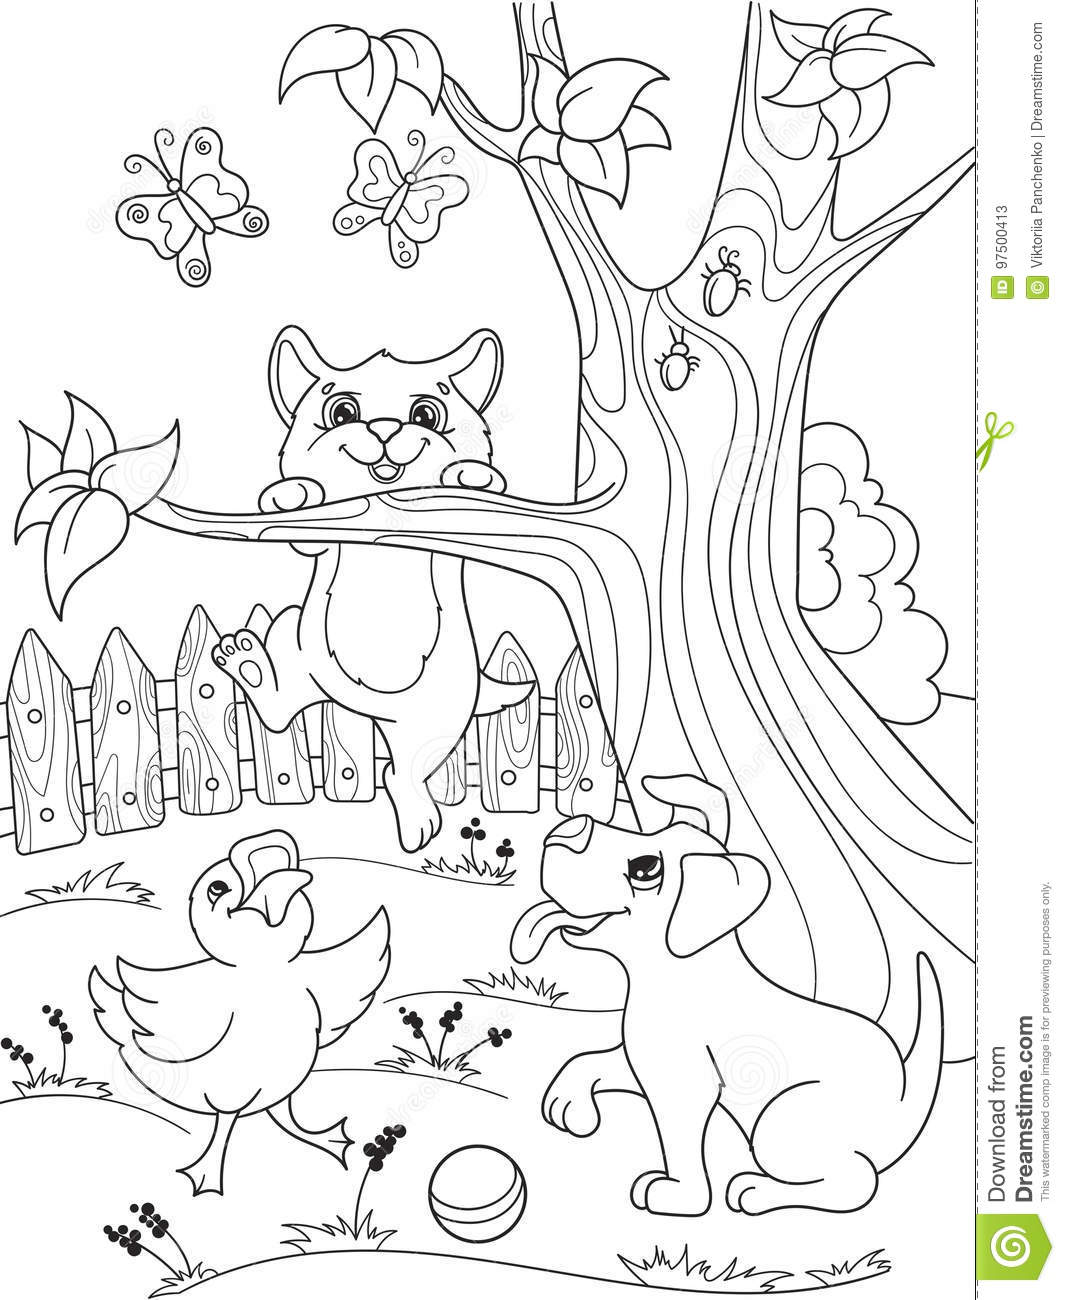 Childrens Coloring Cartoon Animals Friends In Nature